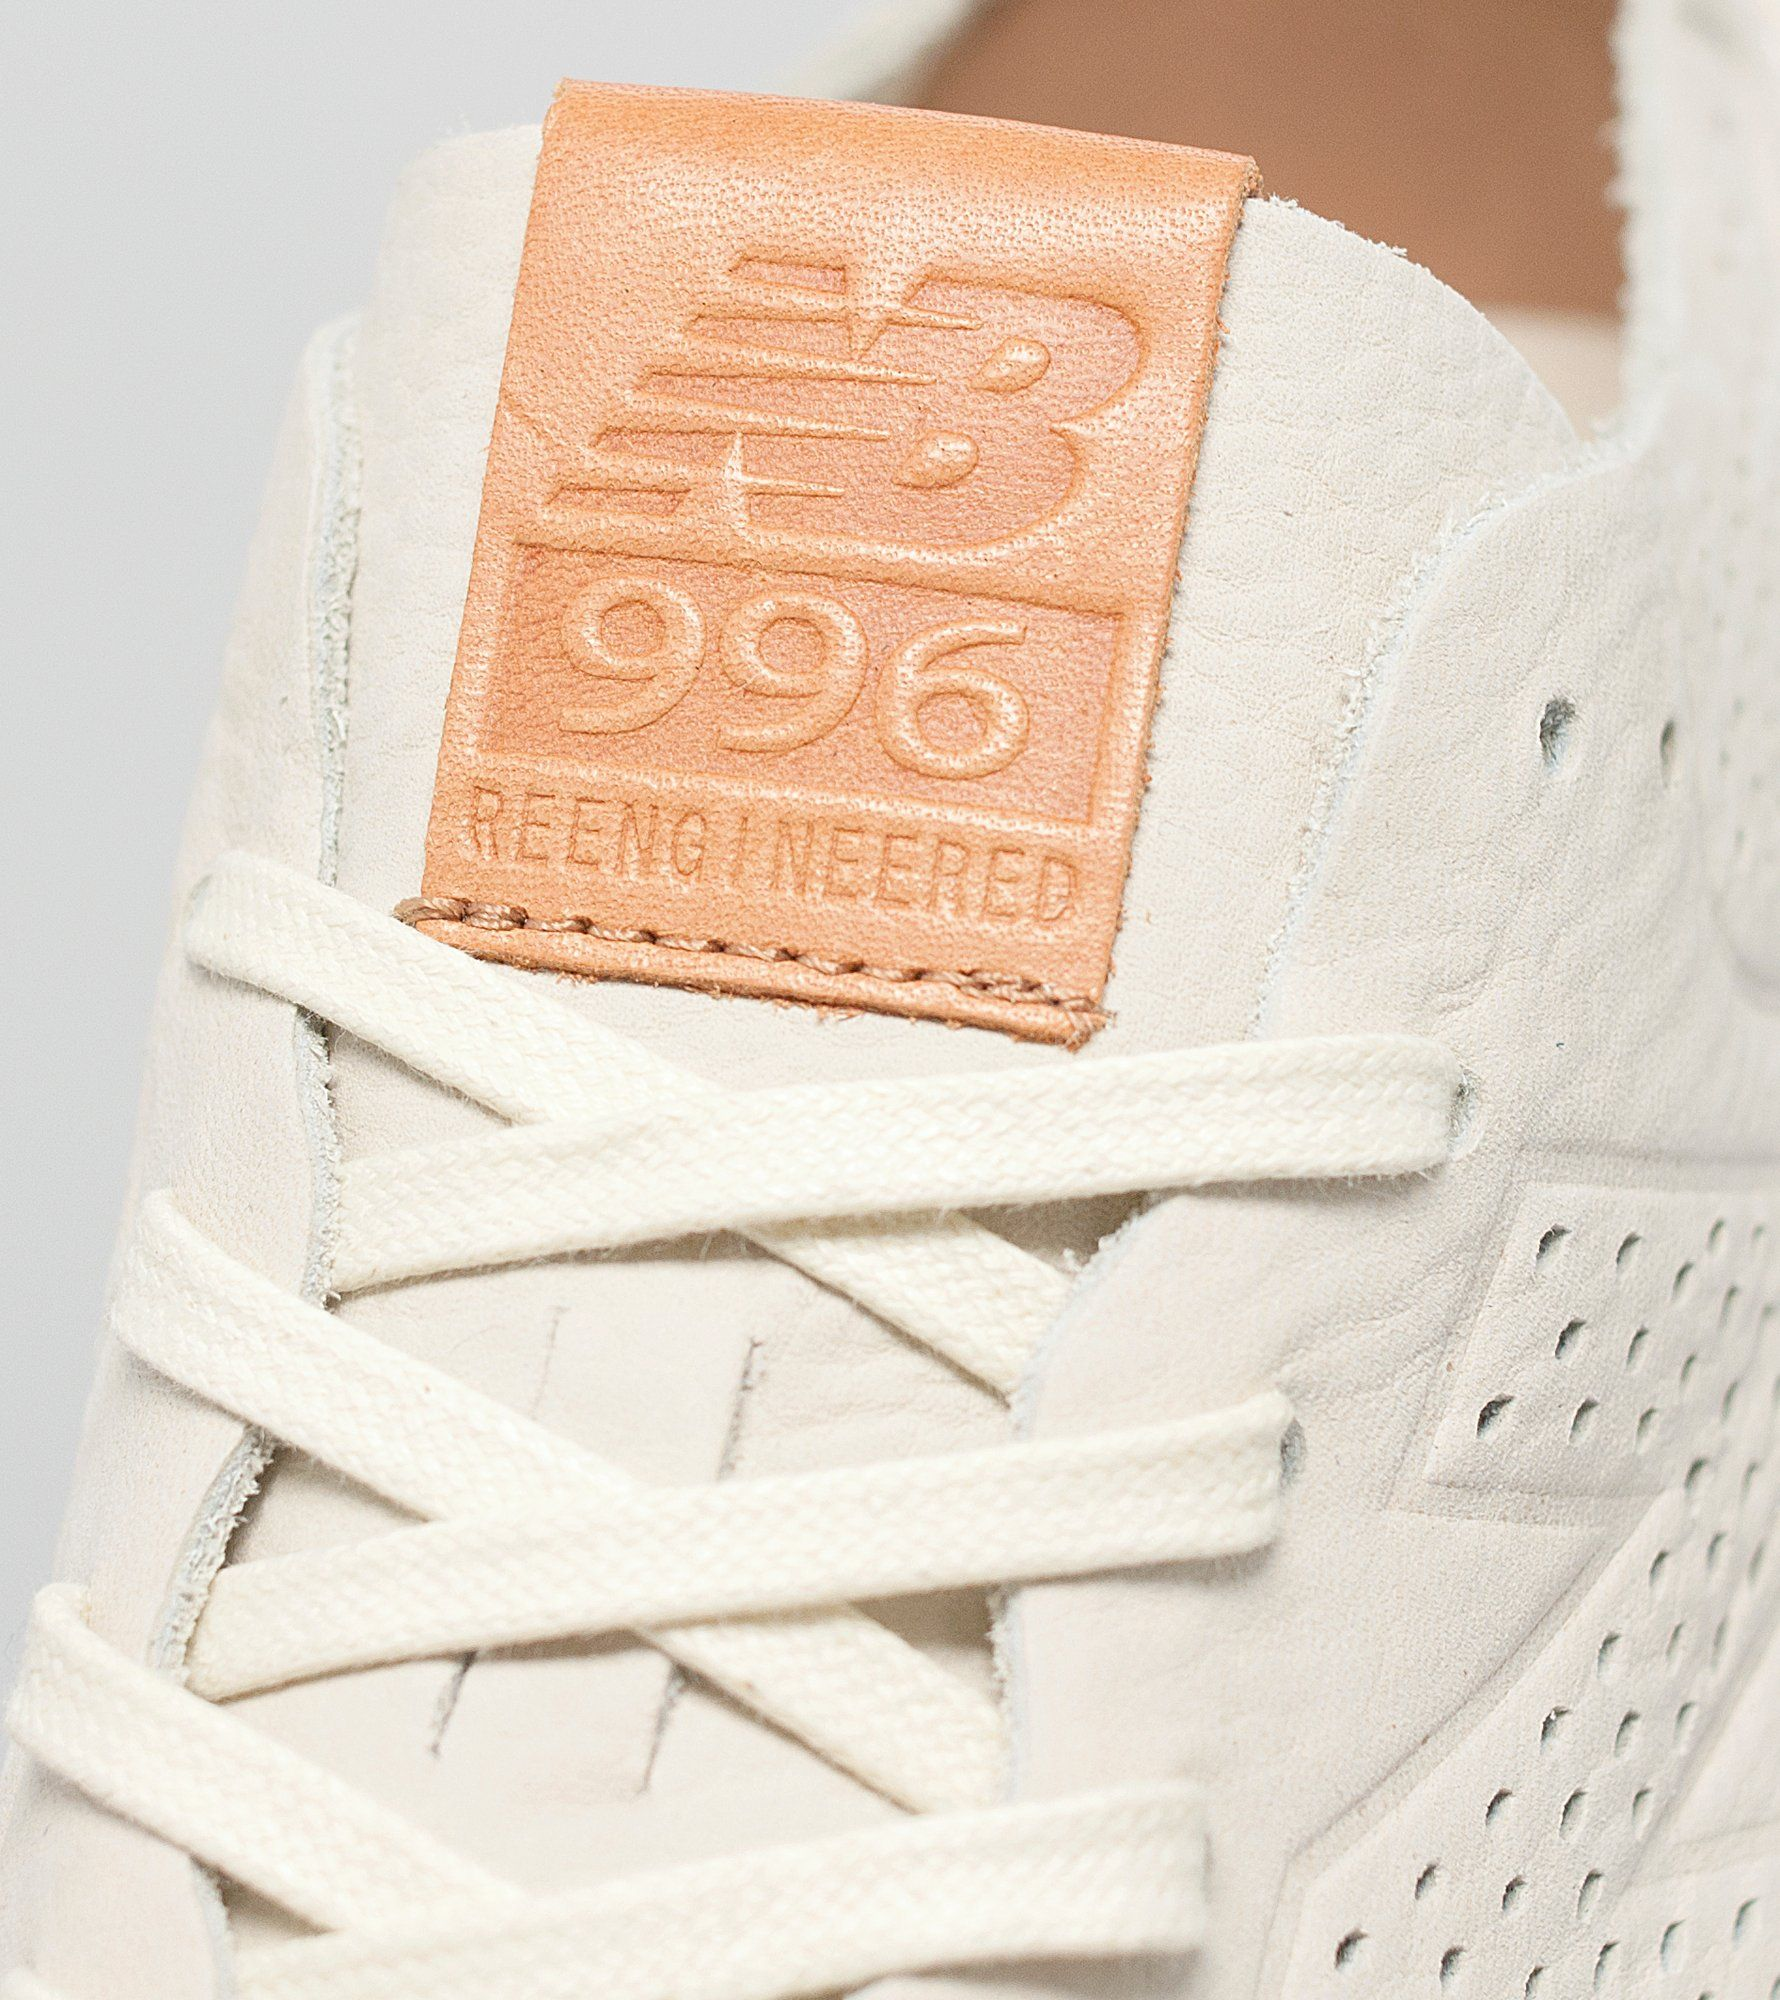 New Balance 996 'Deconstructed'